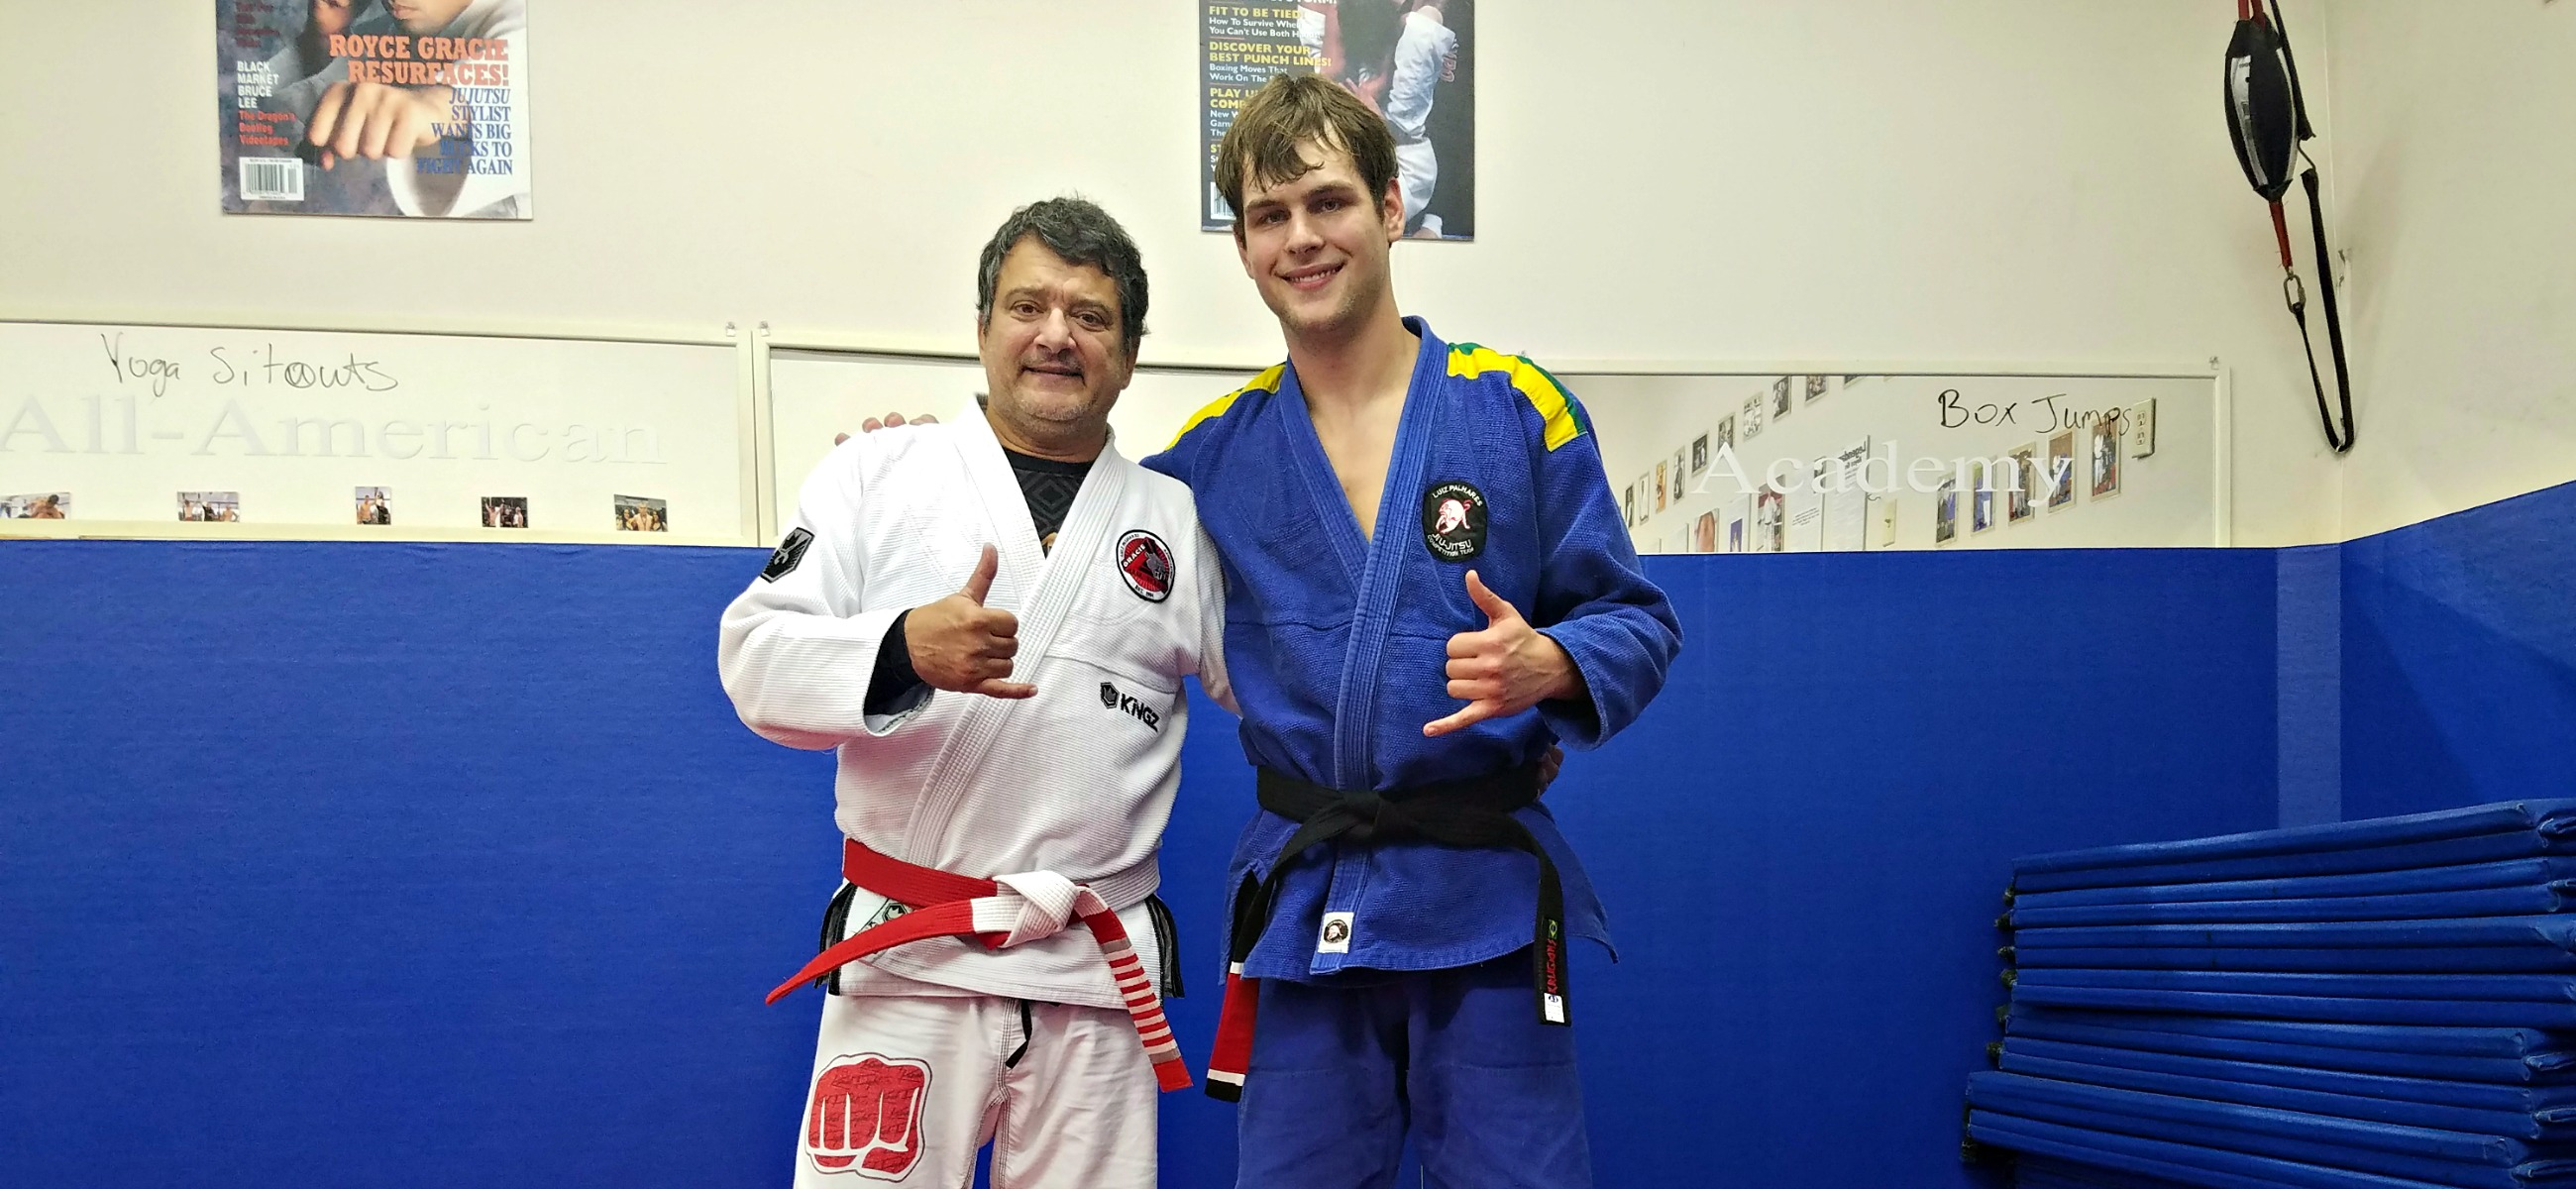 Jay Speight Black Belt